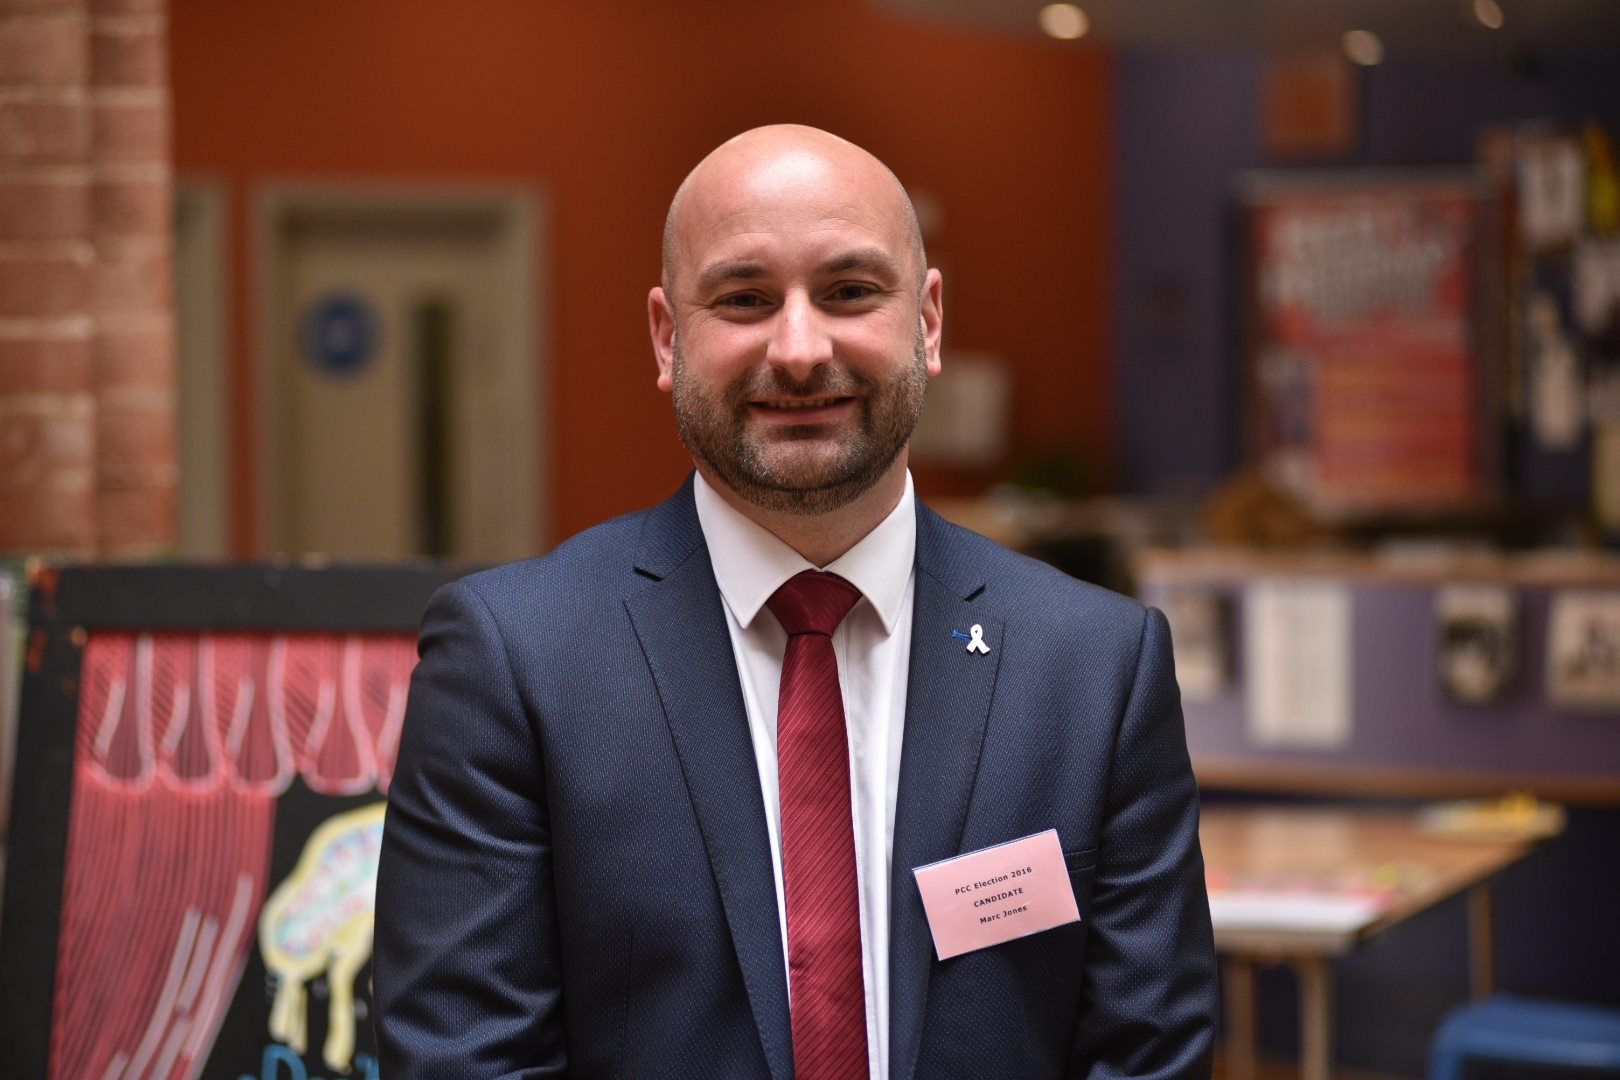 Marc Jones, the Lincolnshire Police and Crime Commissioner.